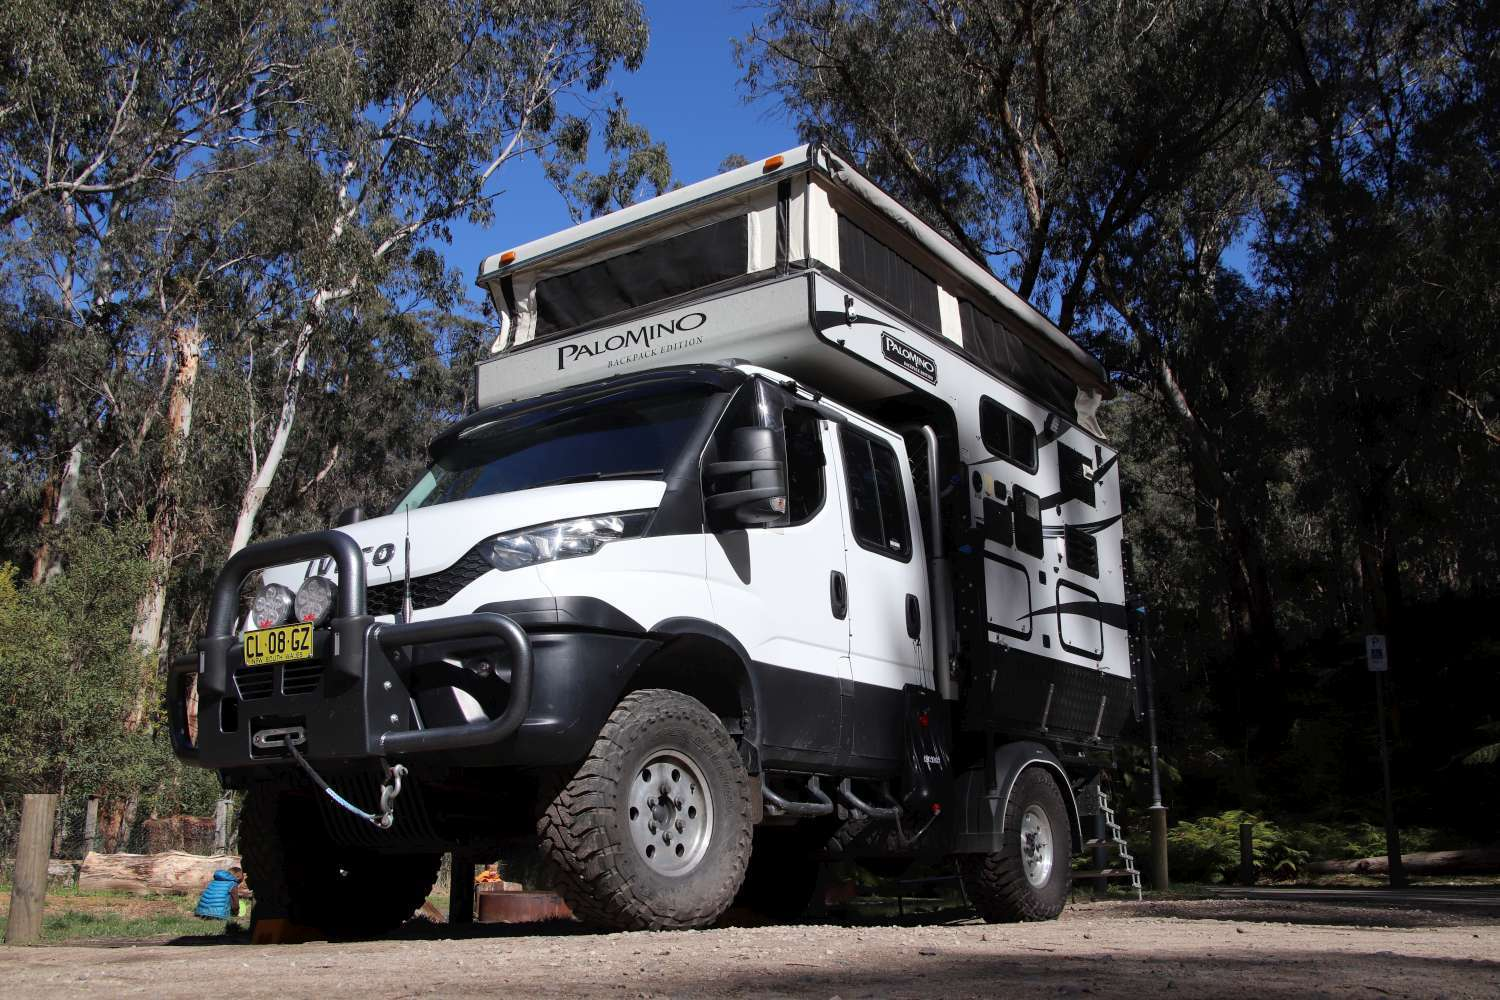 2017 Iveco Daily 4x4 Expedition Camper Jfw5090528 Just 4x4s